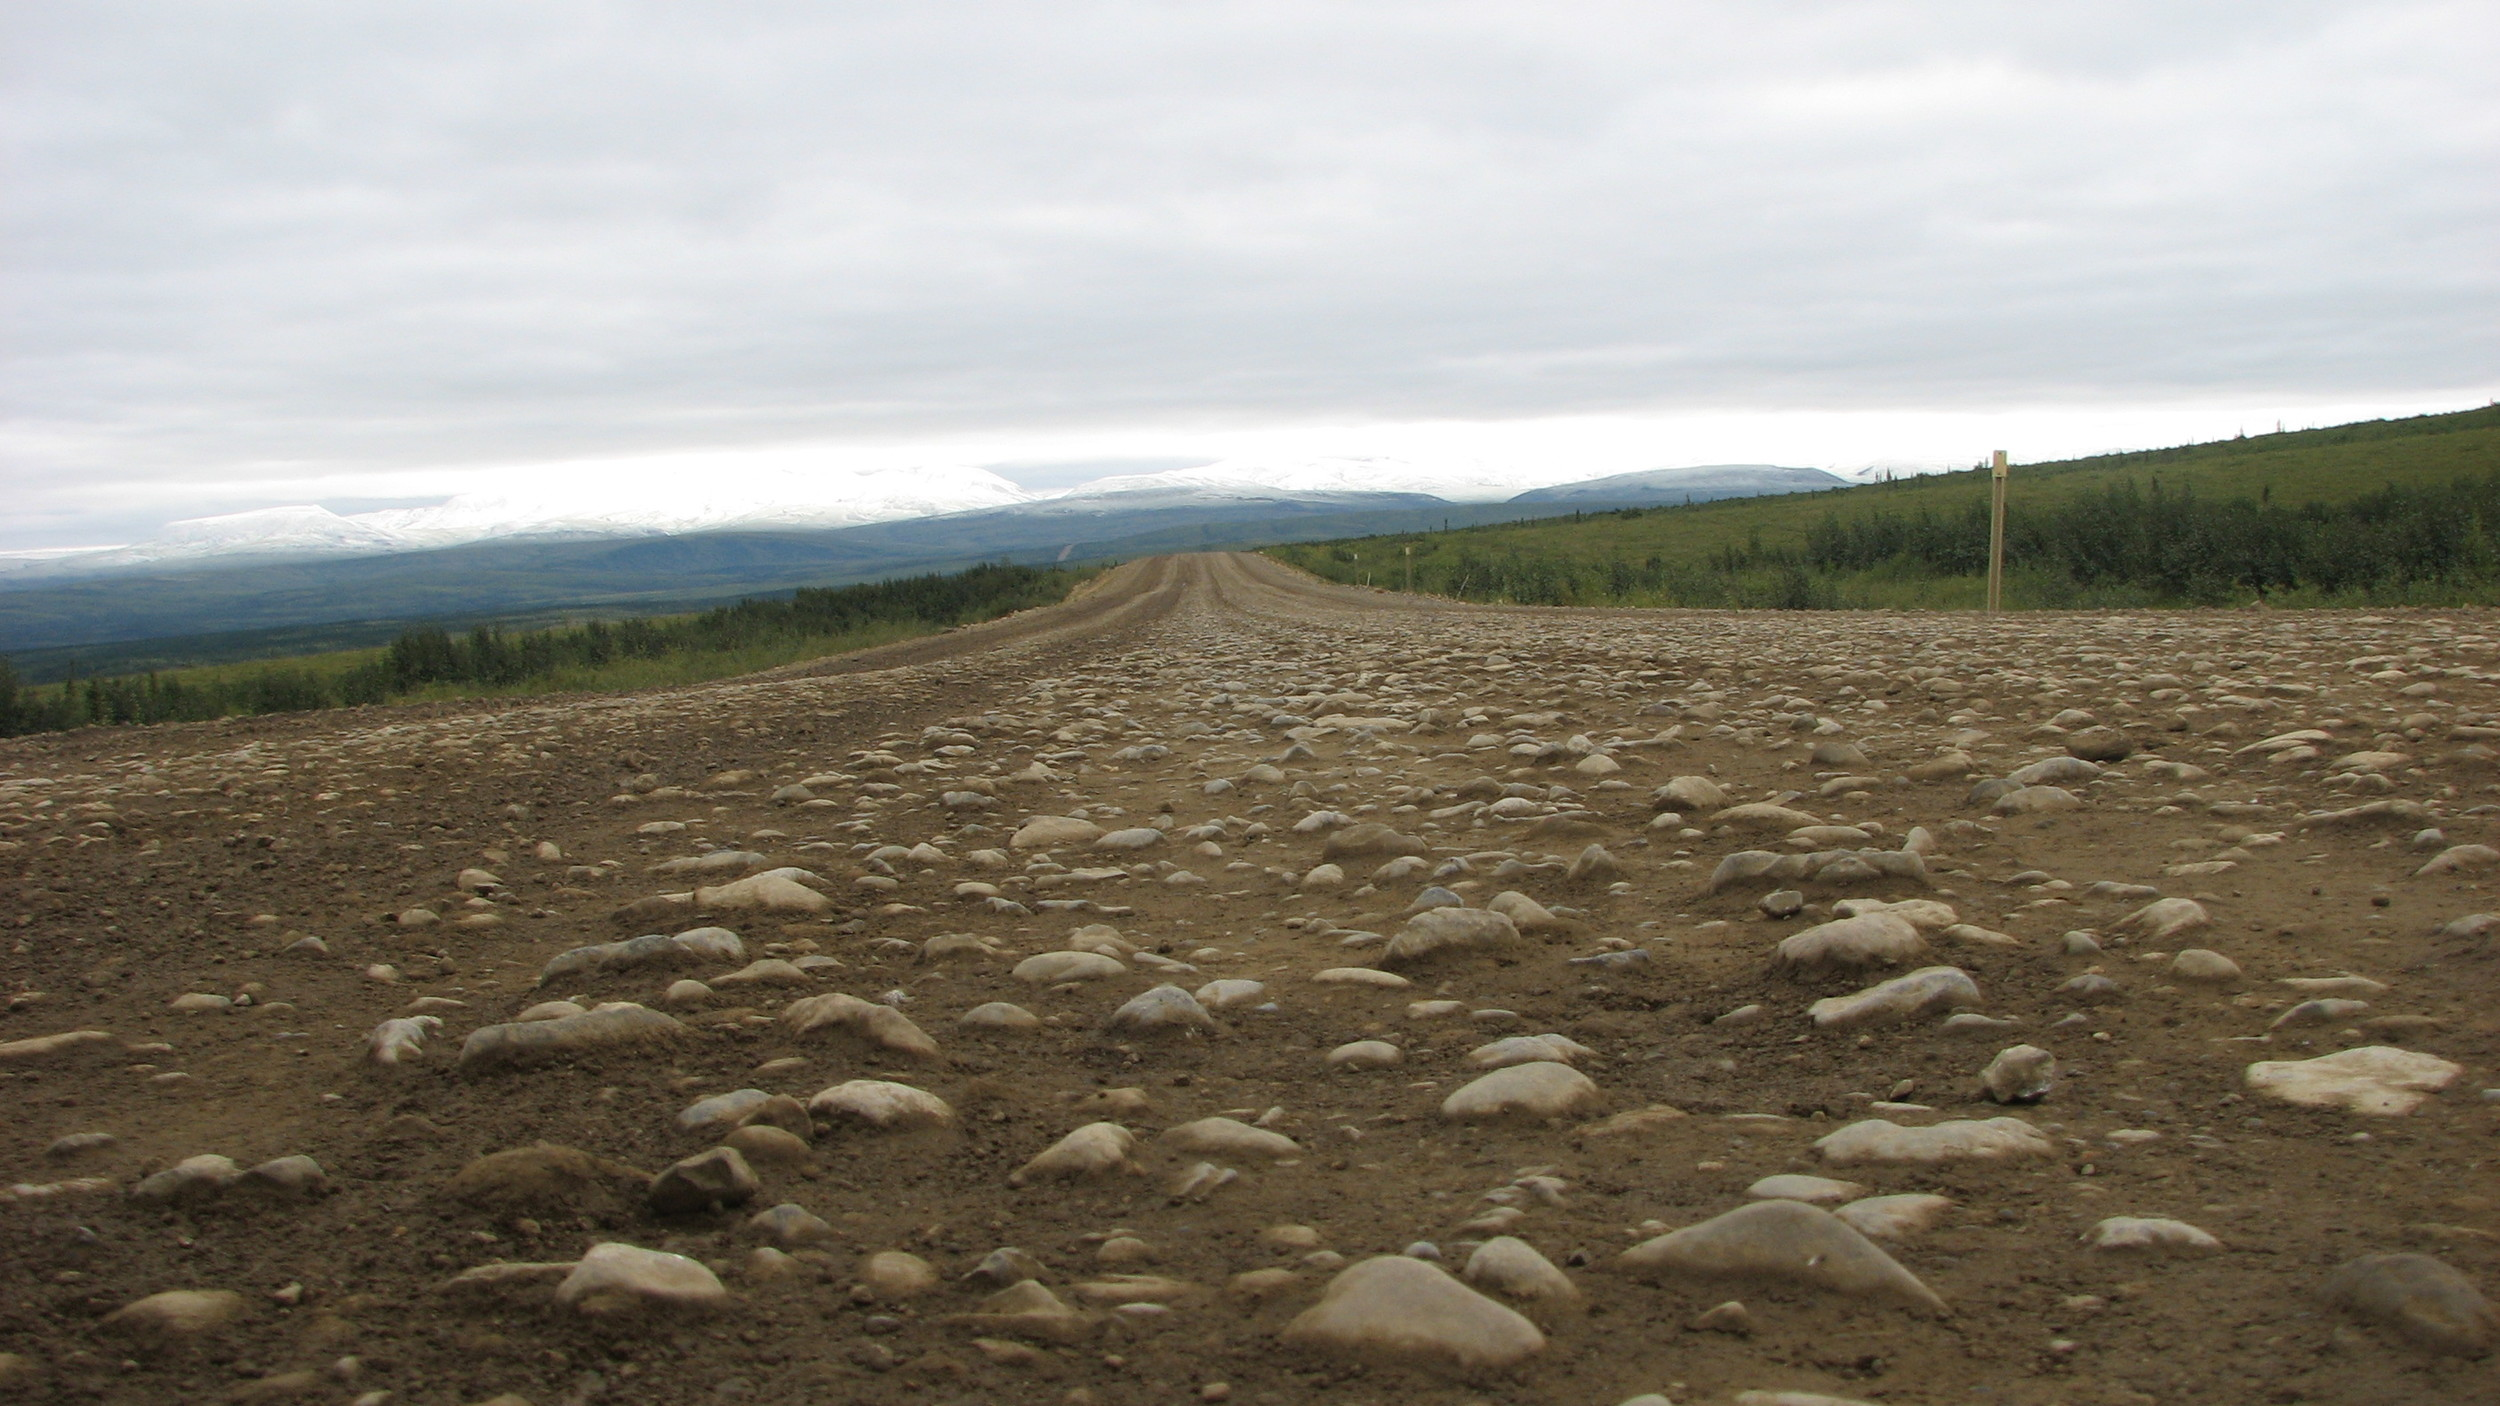 Look! There is some road on those stones.